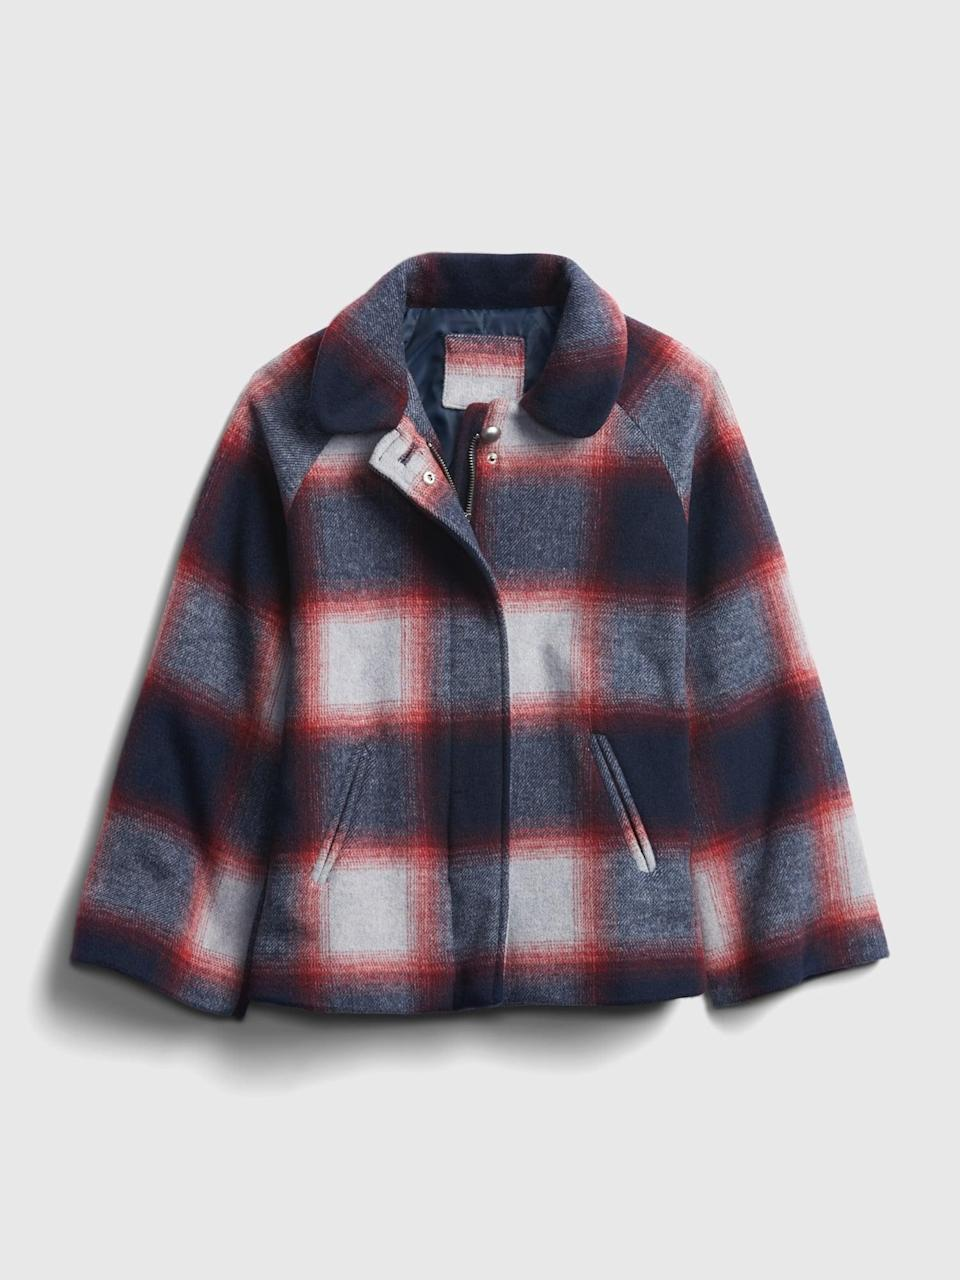 <p>This <span>Gap Kids Plaid Wool Jacket</span> ($54, originally $108) is perfect for weekend adventures! Durable and stylish!</p>